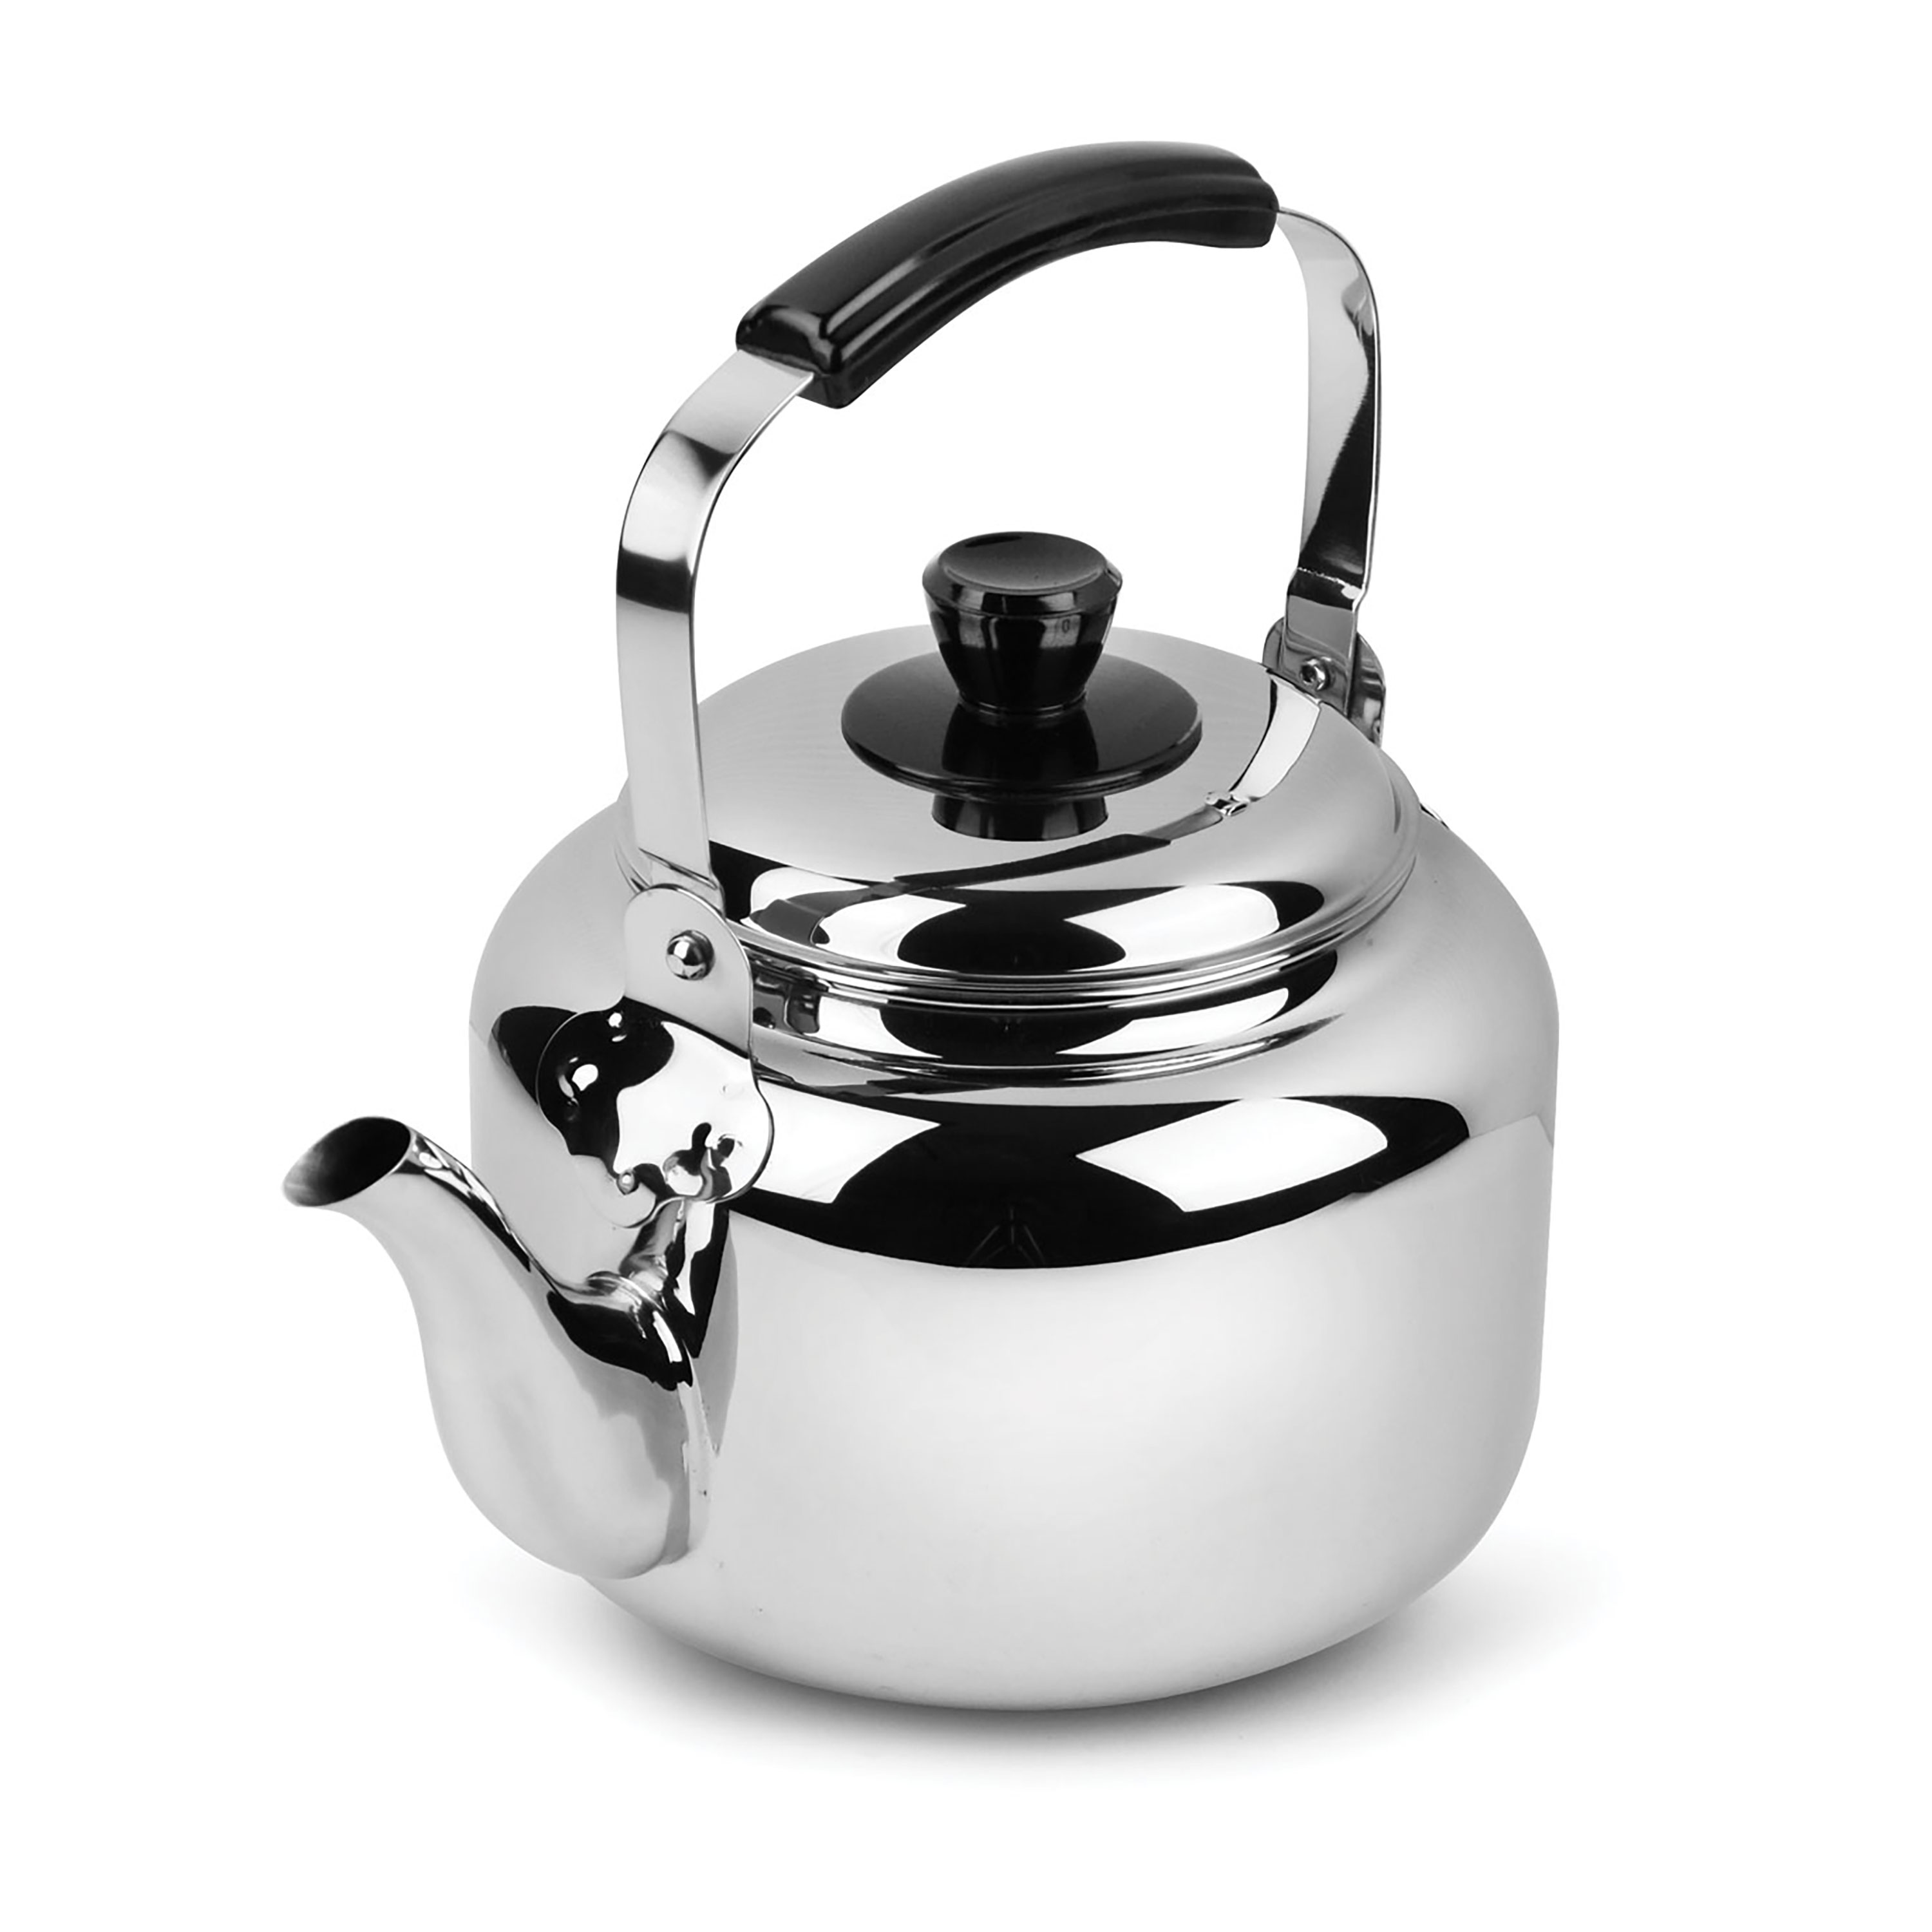 demeyere resto stainless steel tea kettle quart  cutlery and  -